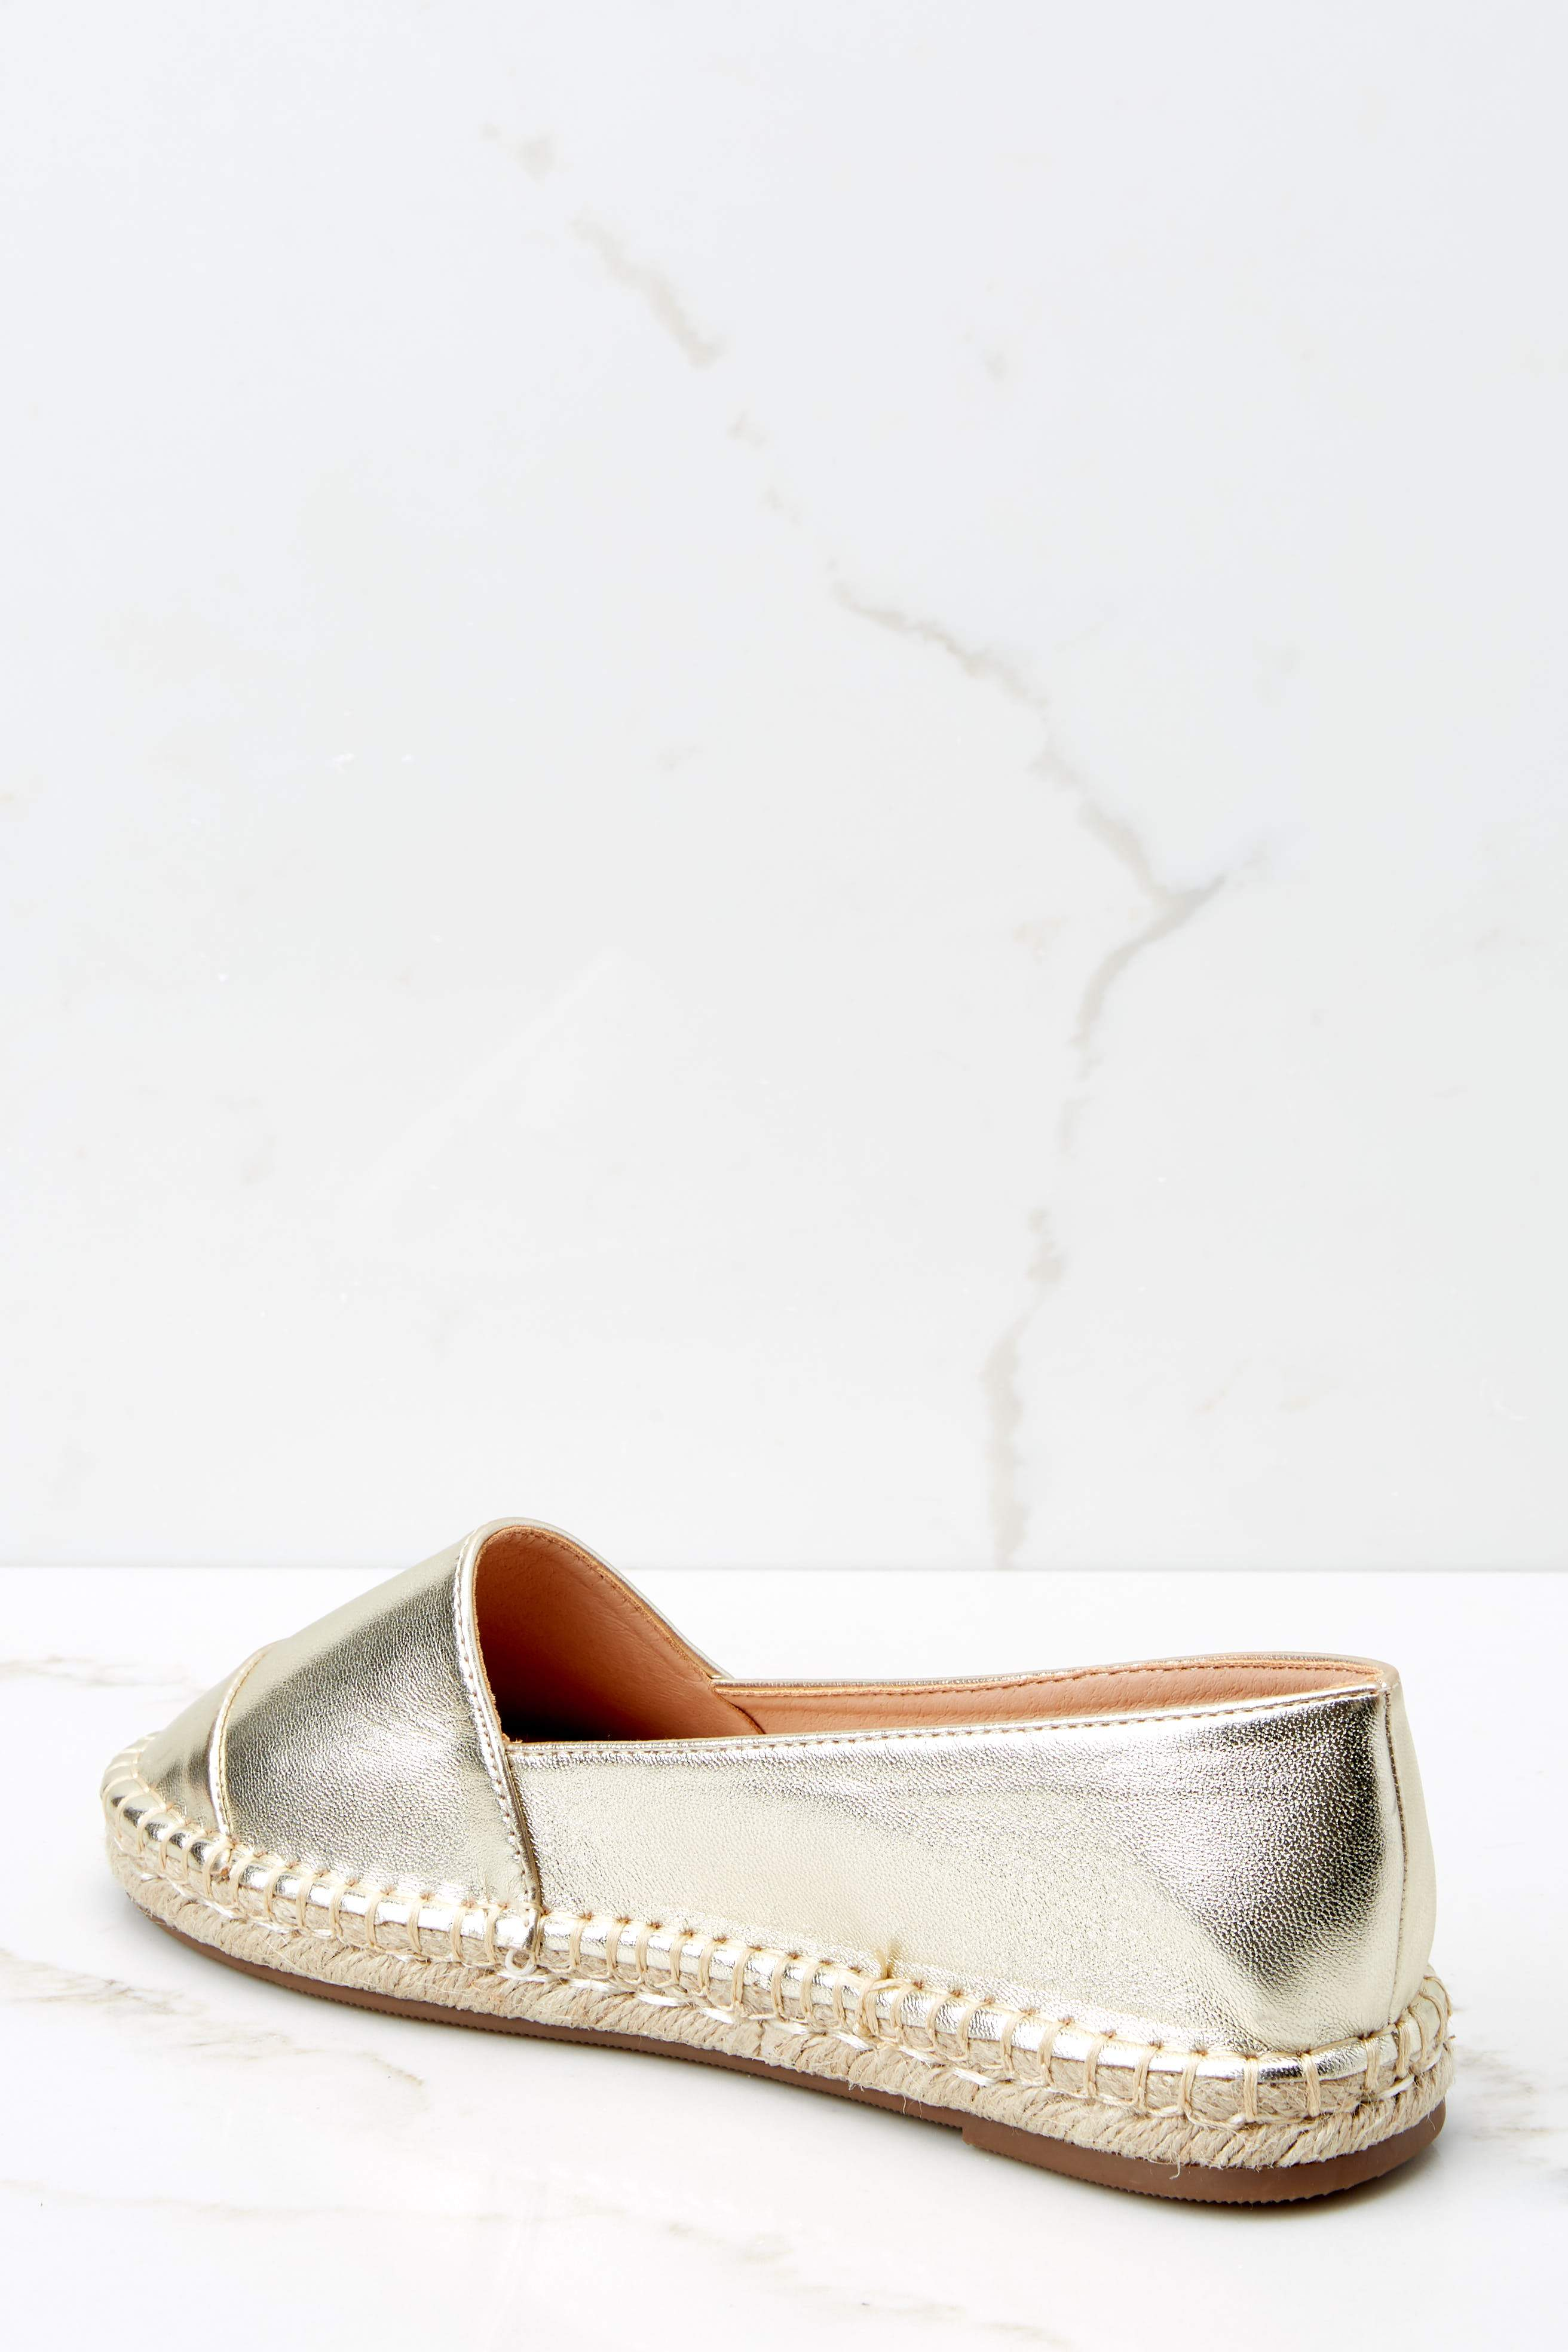 4 Following Fun Metallic Gold Slip On Espadrille Flats at reddress.com